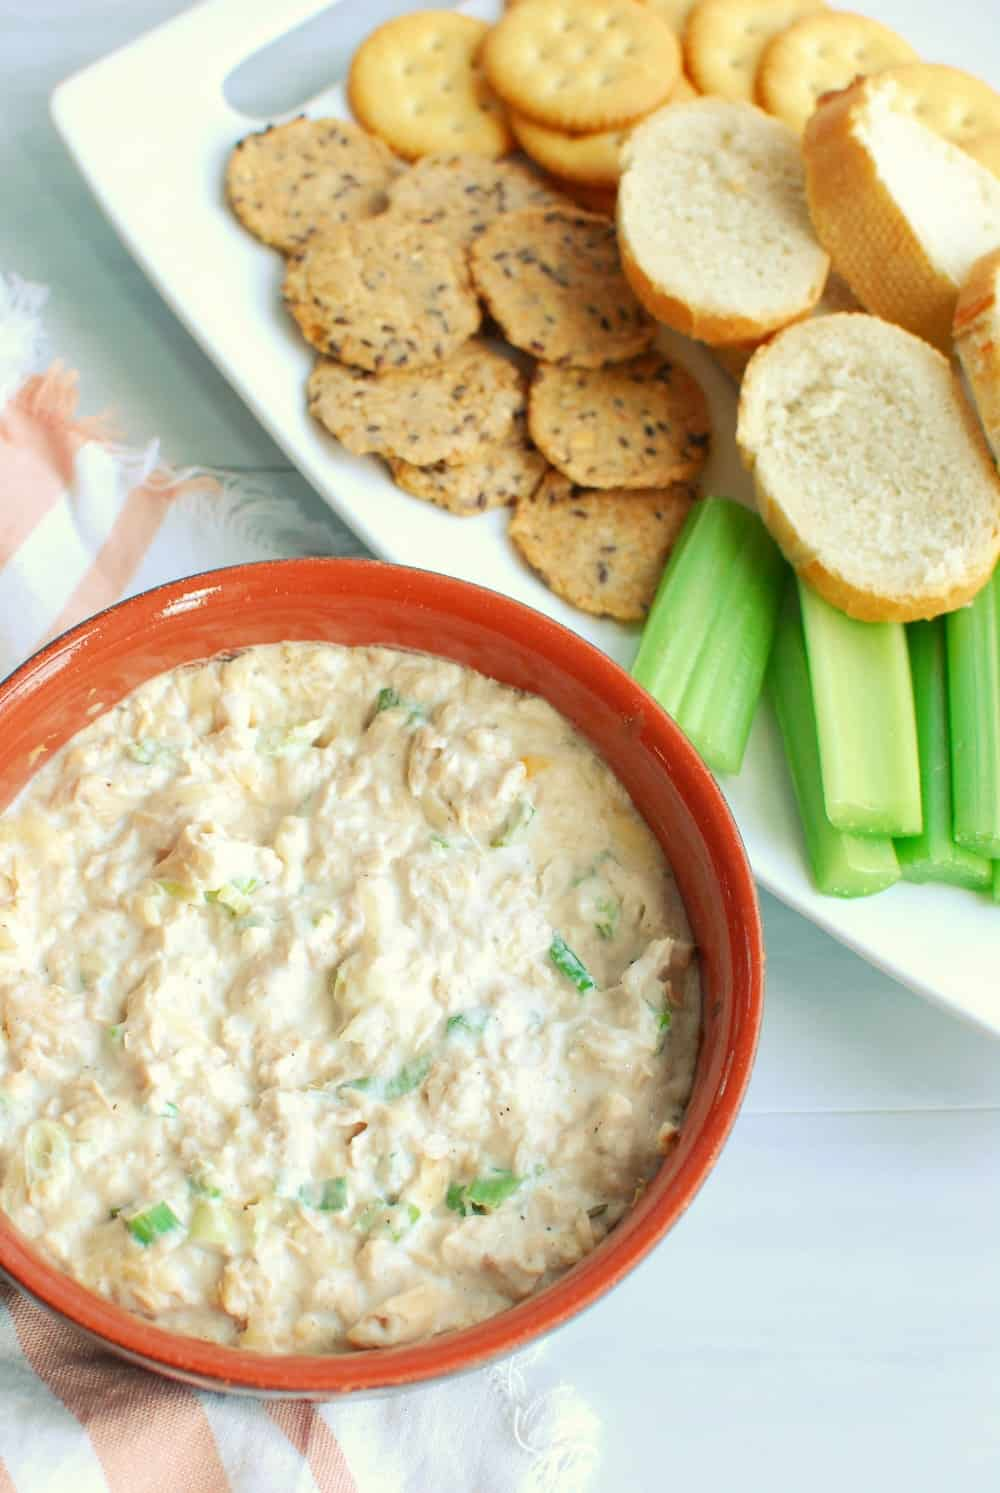 a ramekin full of hot salmon dip, next to dippers like celery and baguettes